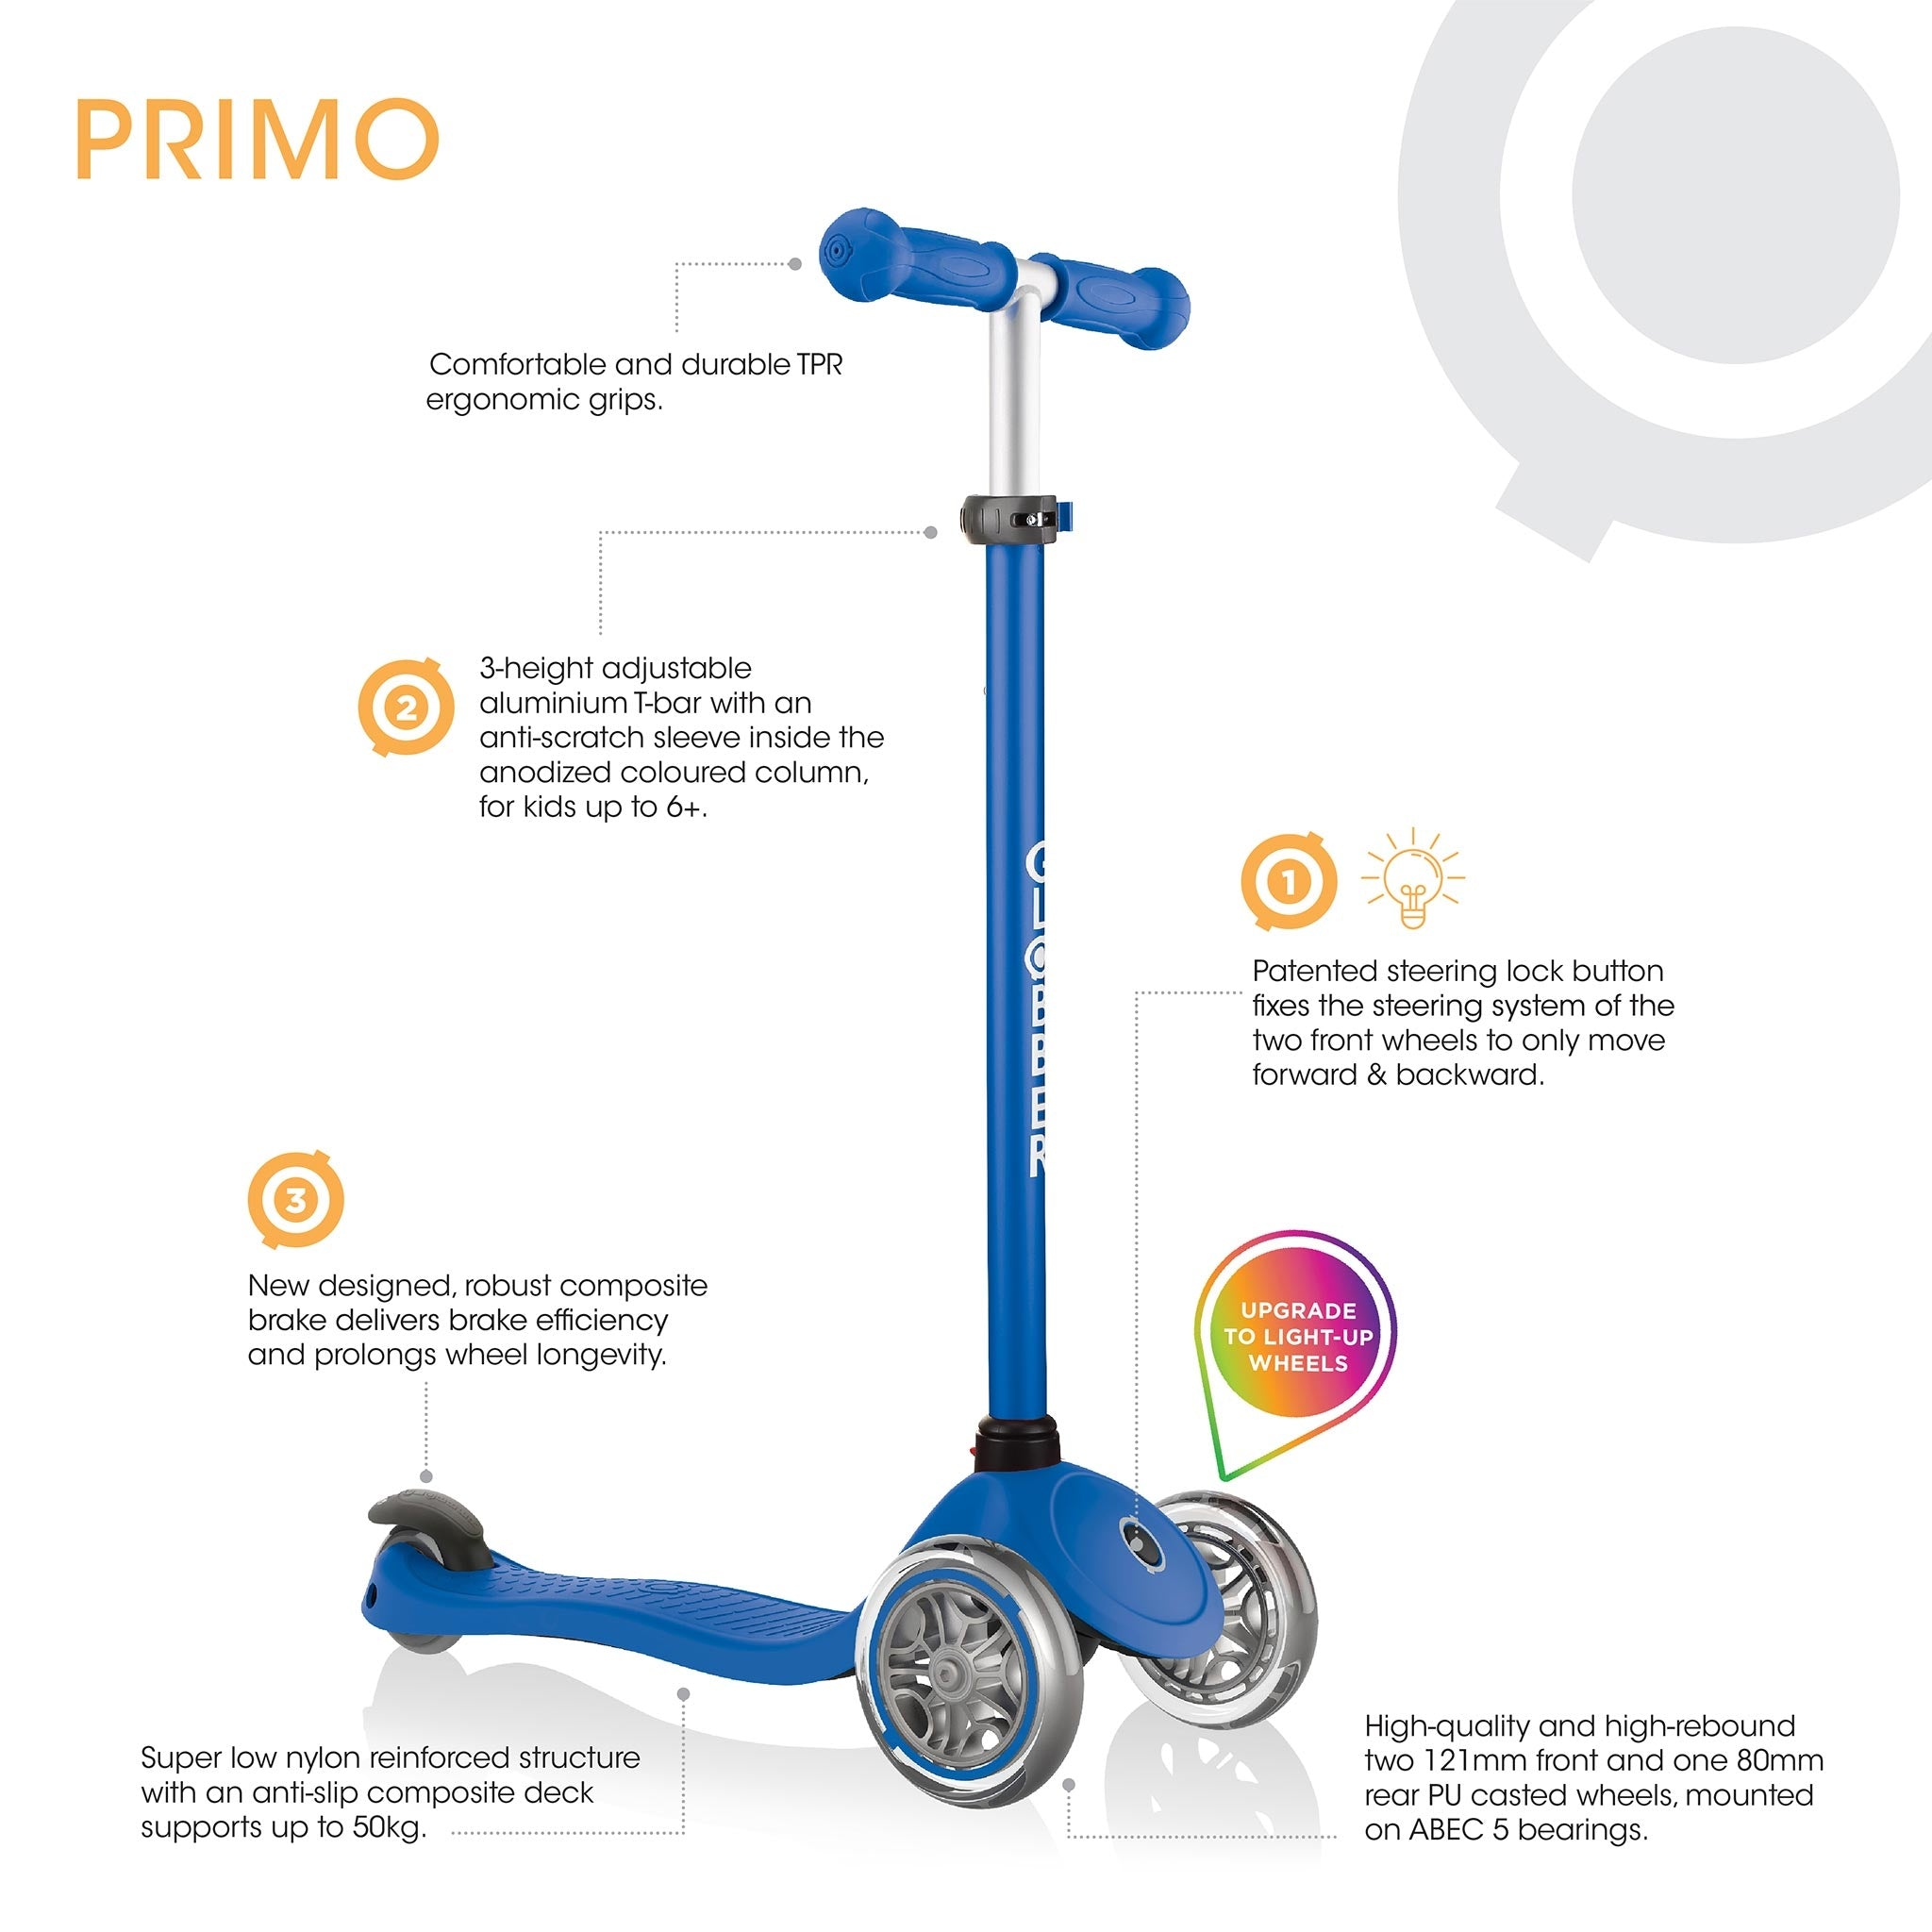 See all the features of the Globber Primo Light kids scooter at a glance